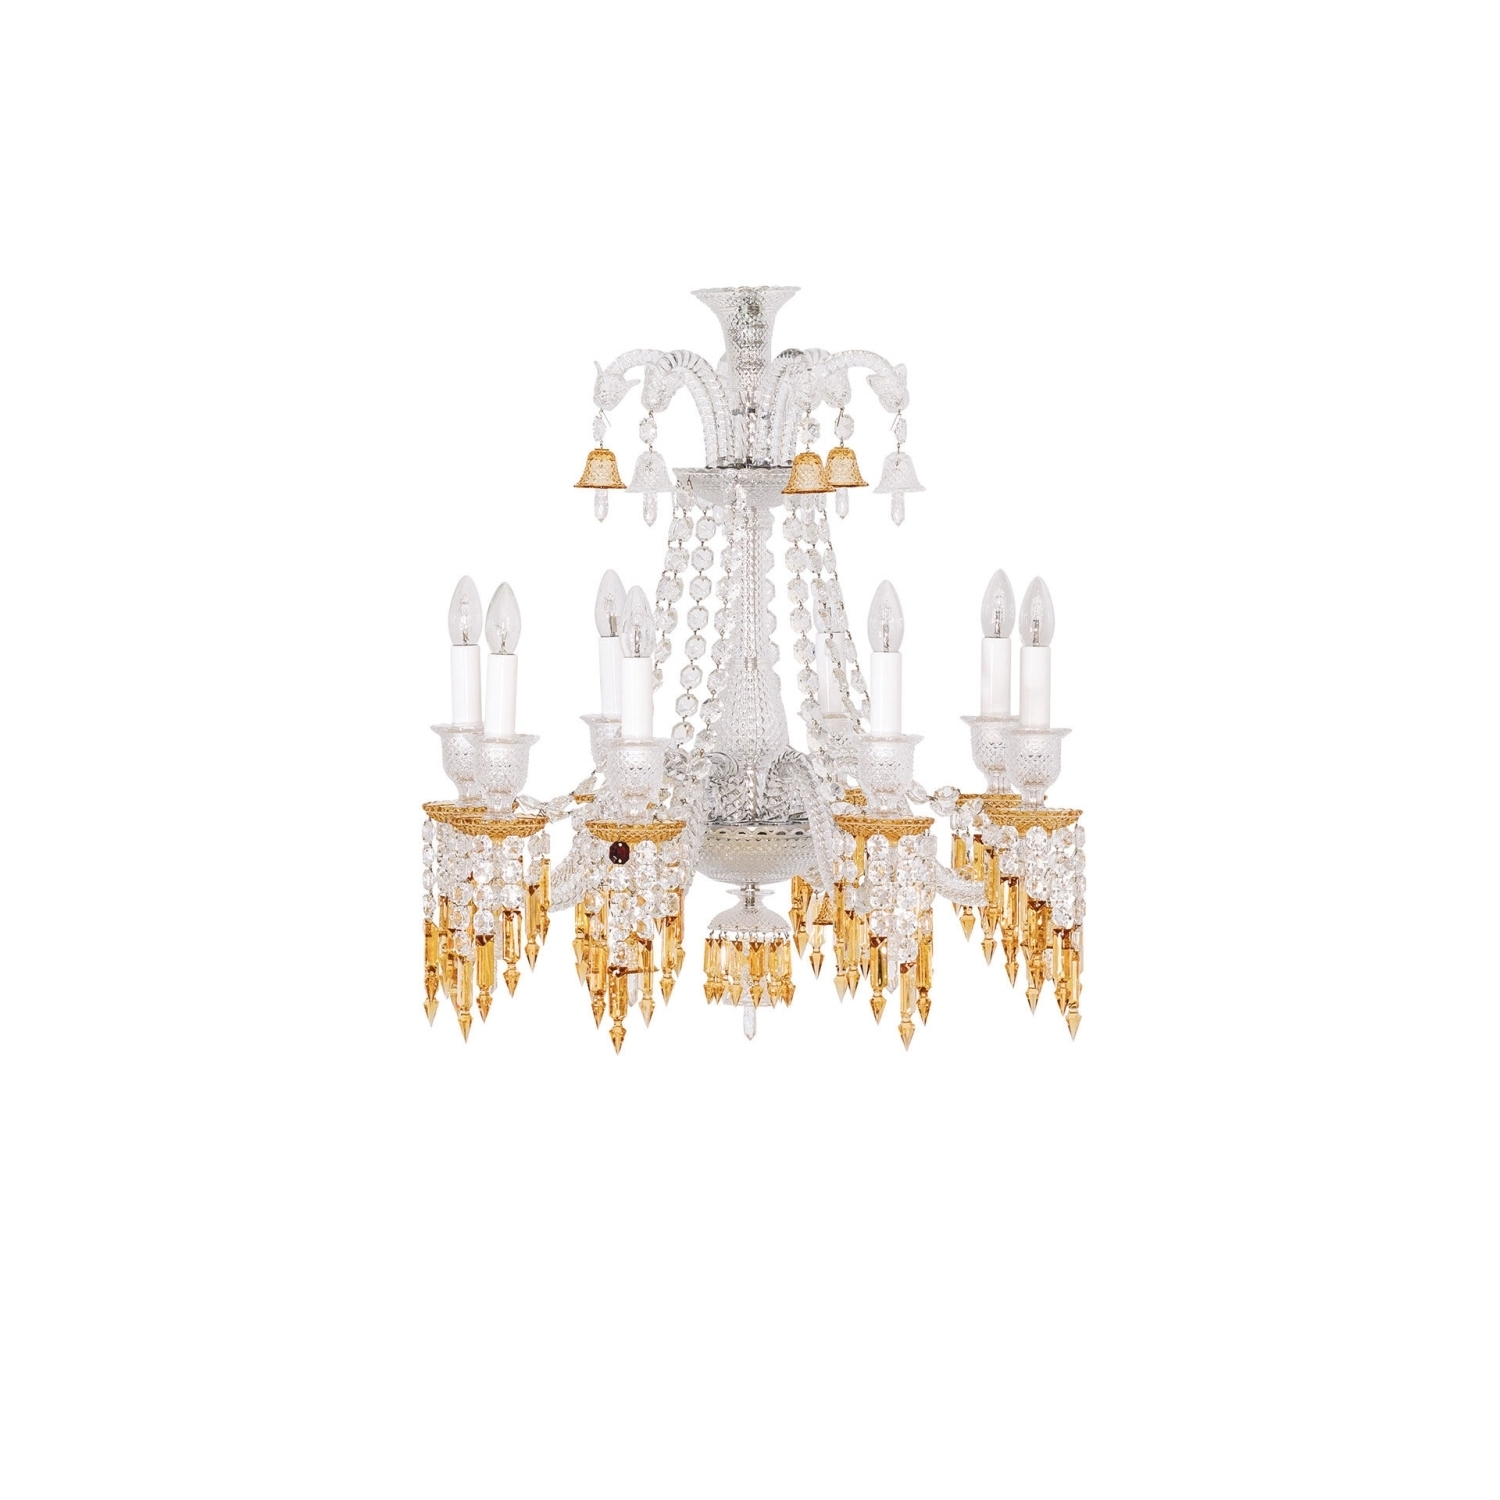 Chandelier 8L Baccarat Zenith Charleston 2809404 Throughout Most Popular Short Chandeliers (View 4 of 20)